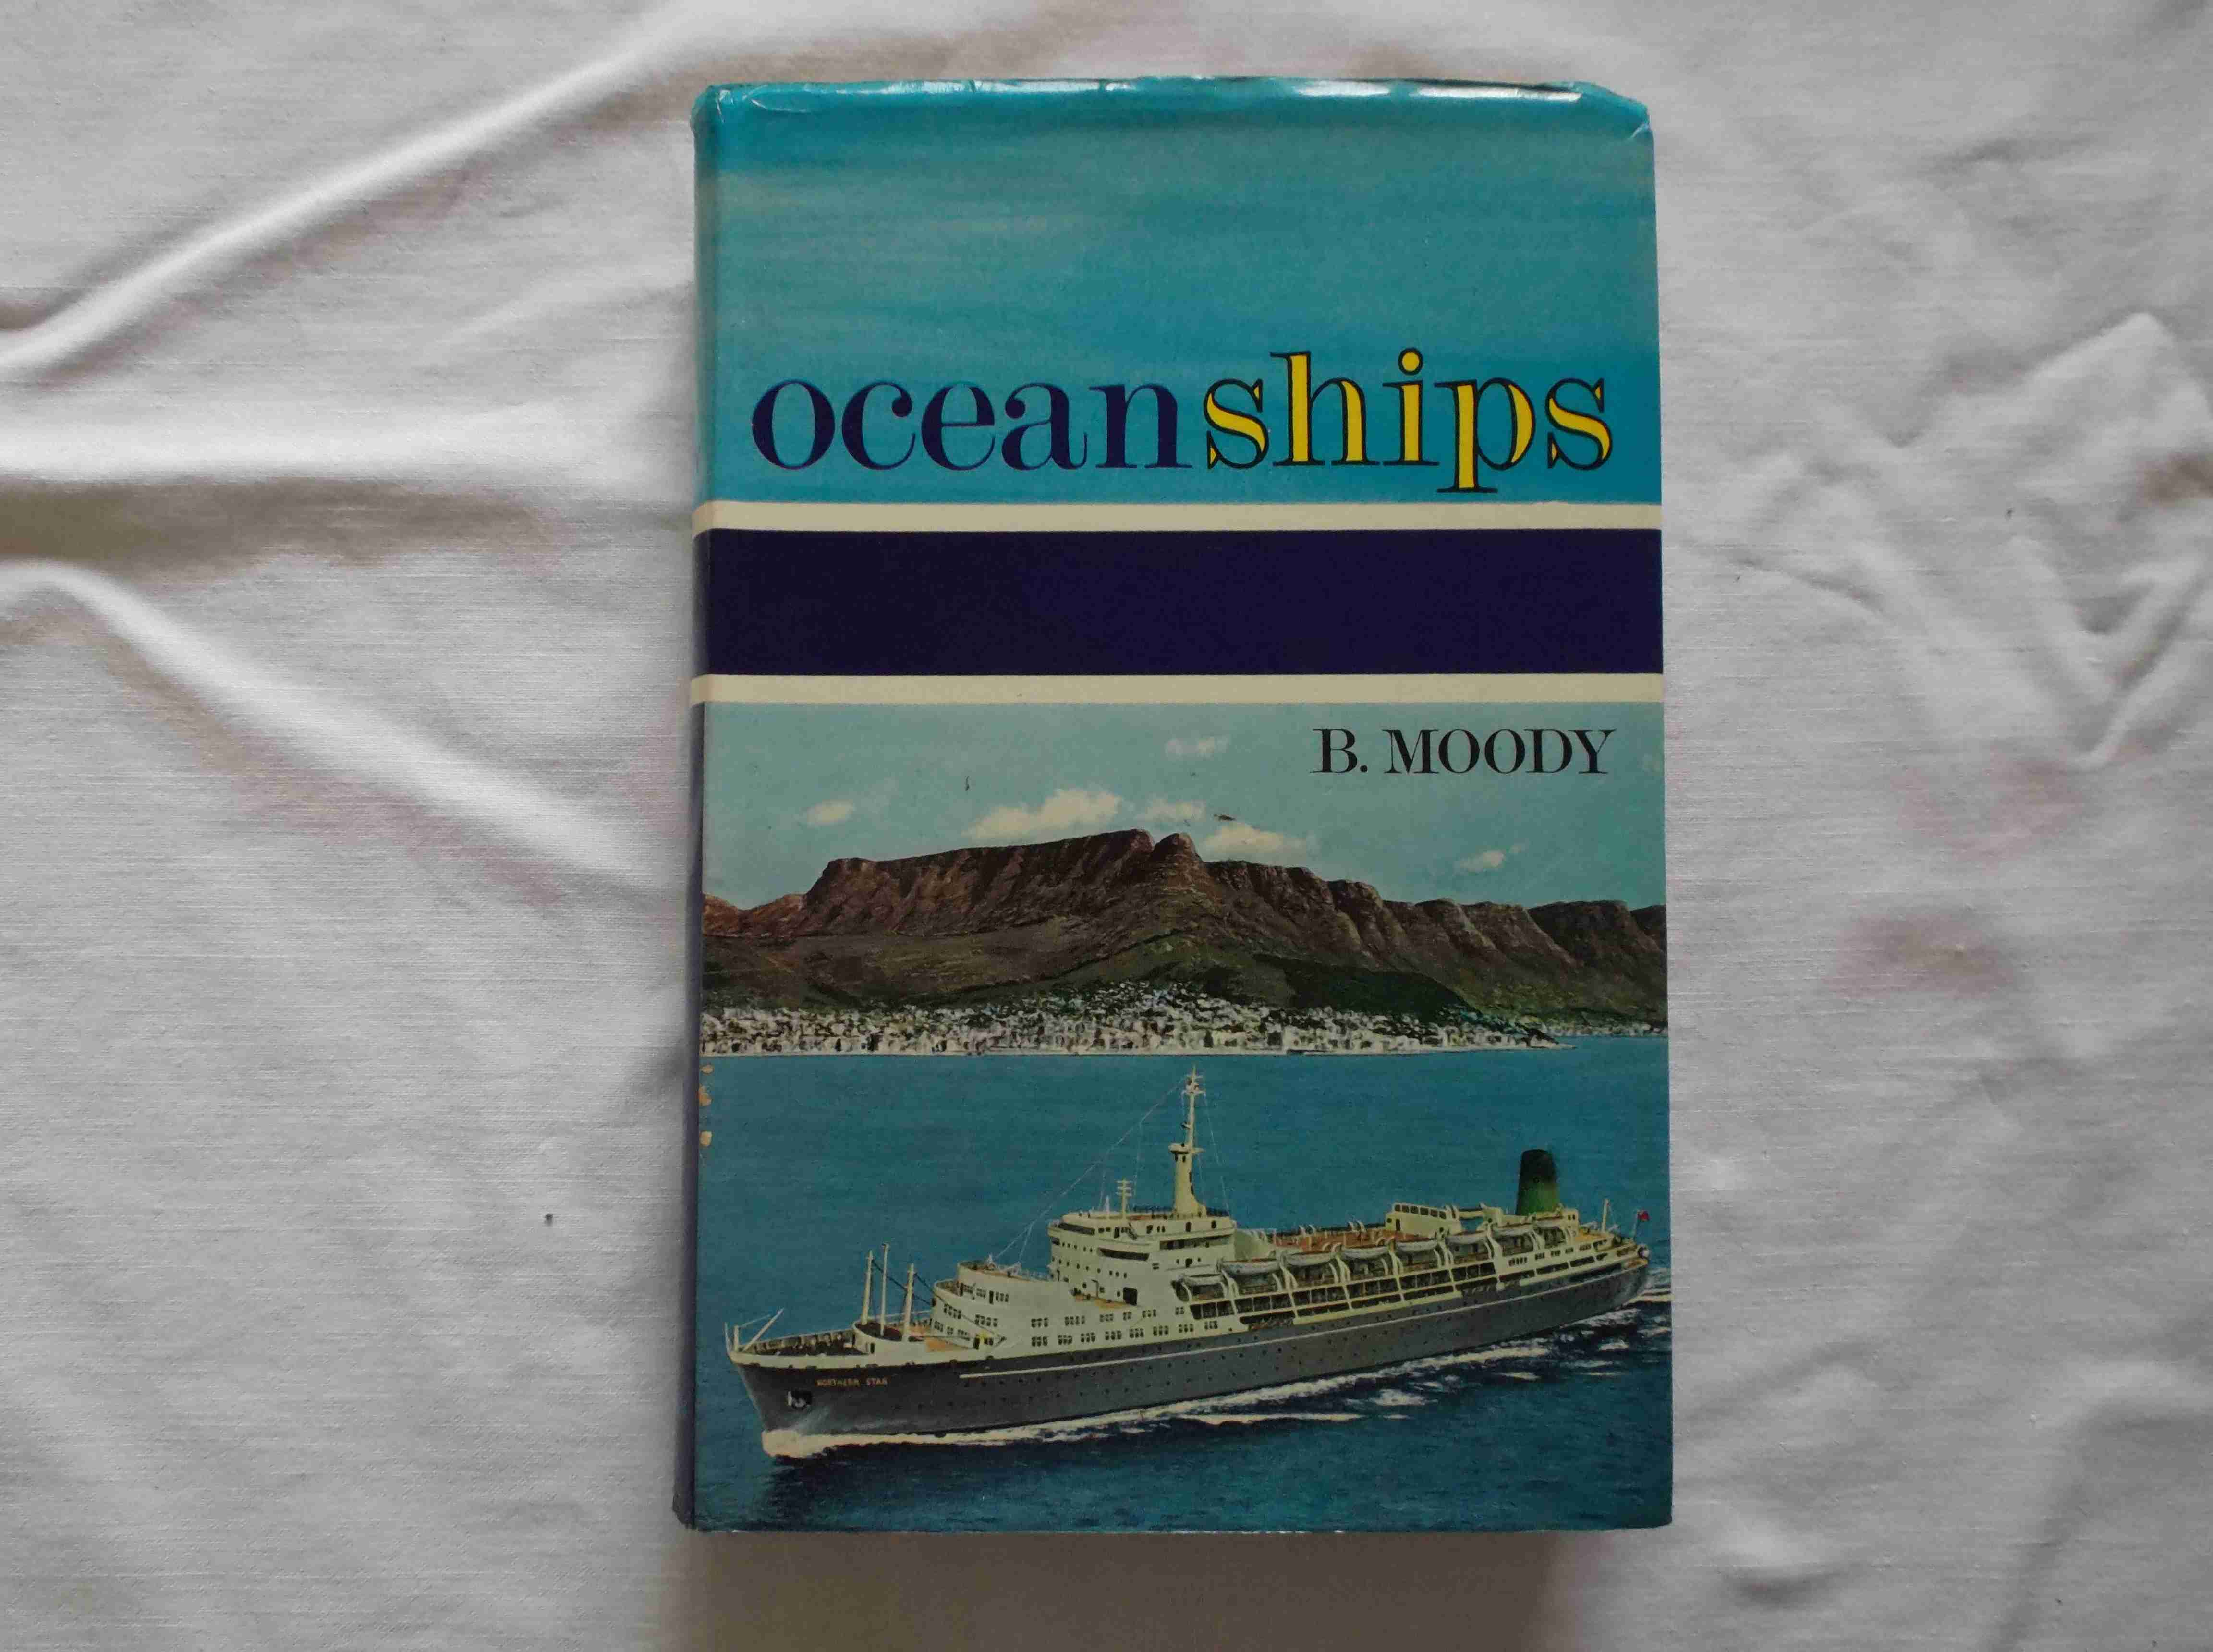 RARE MARITIME BOOK FROM THE 'OCEAN SHIPS' COLLECTION DATED 1966